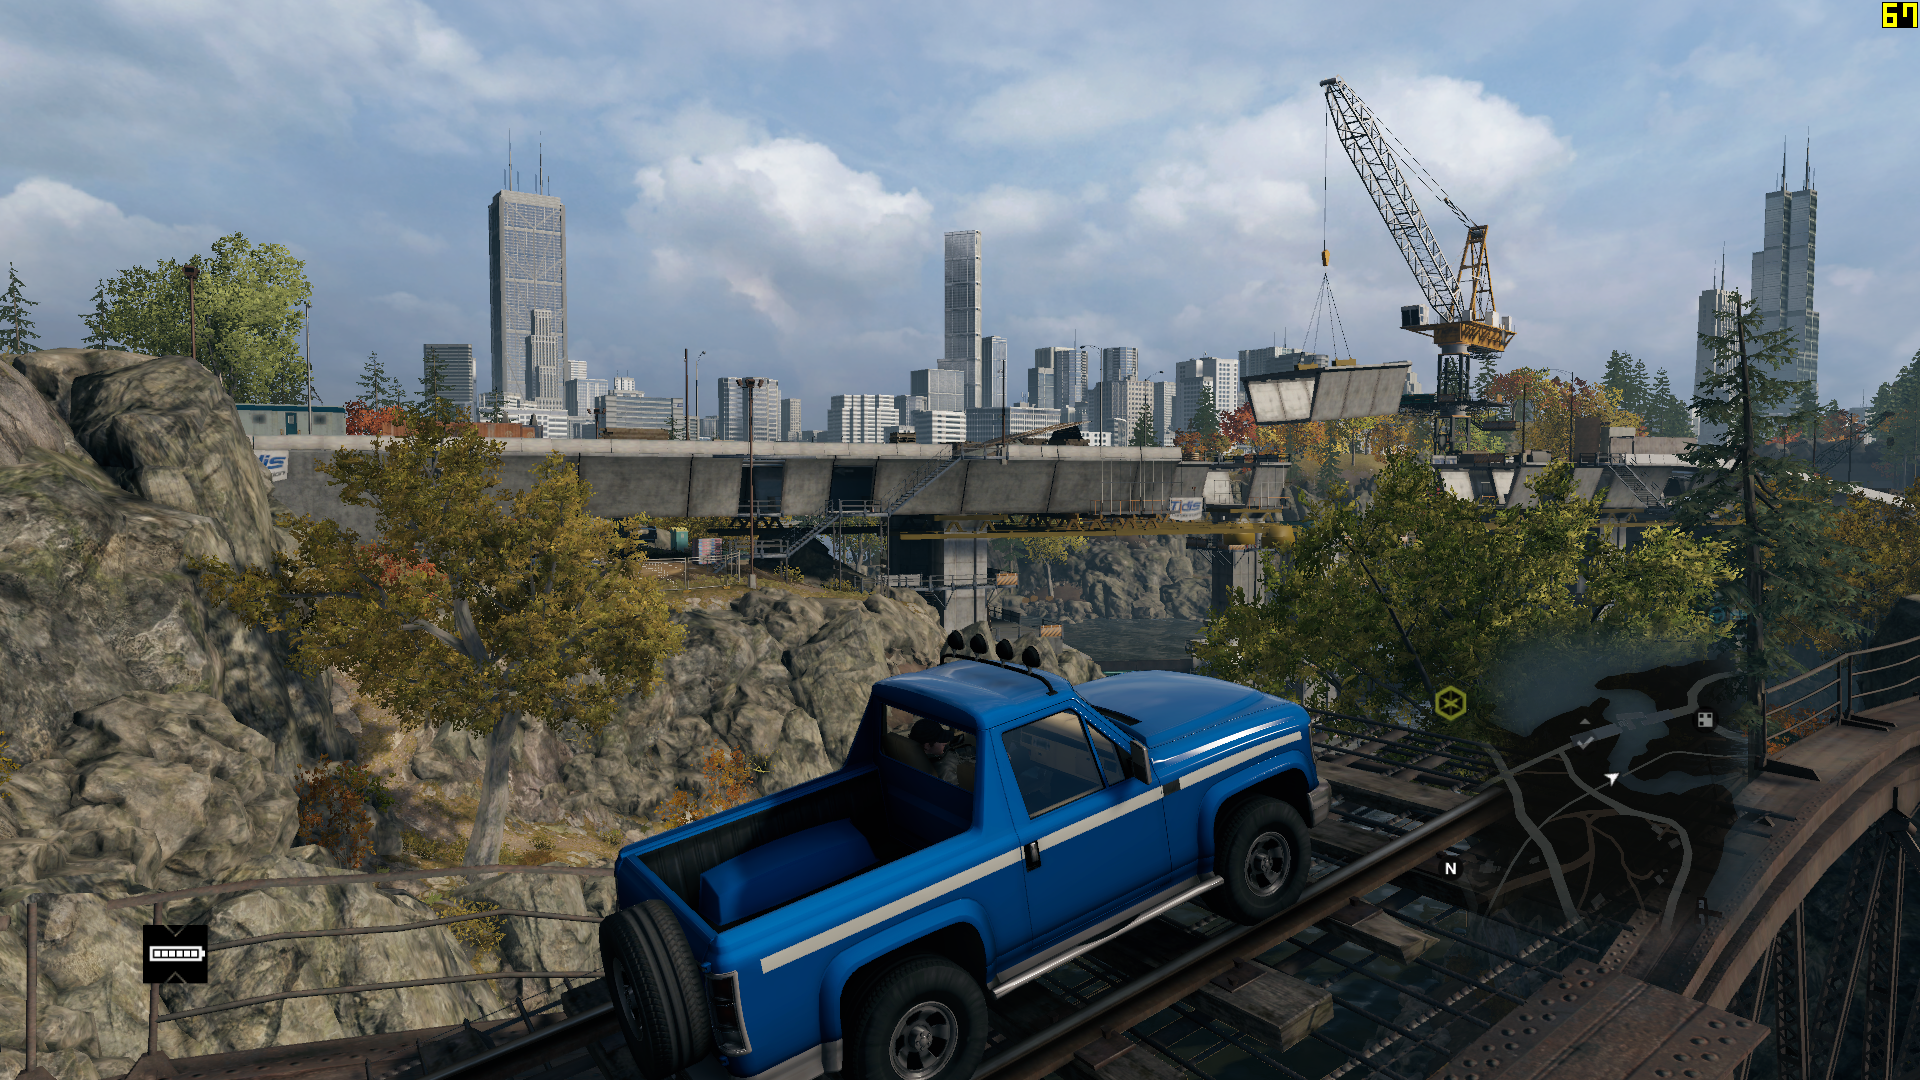 watch_dogs2014-06-050agxvn.png